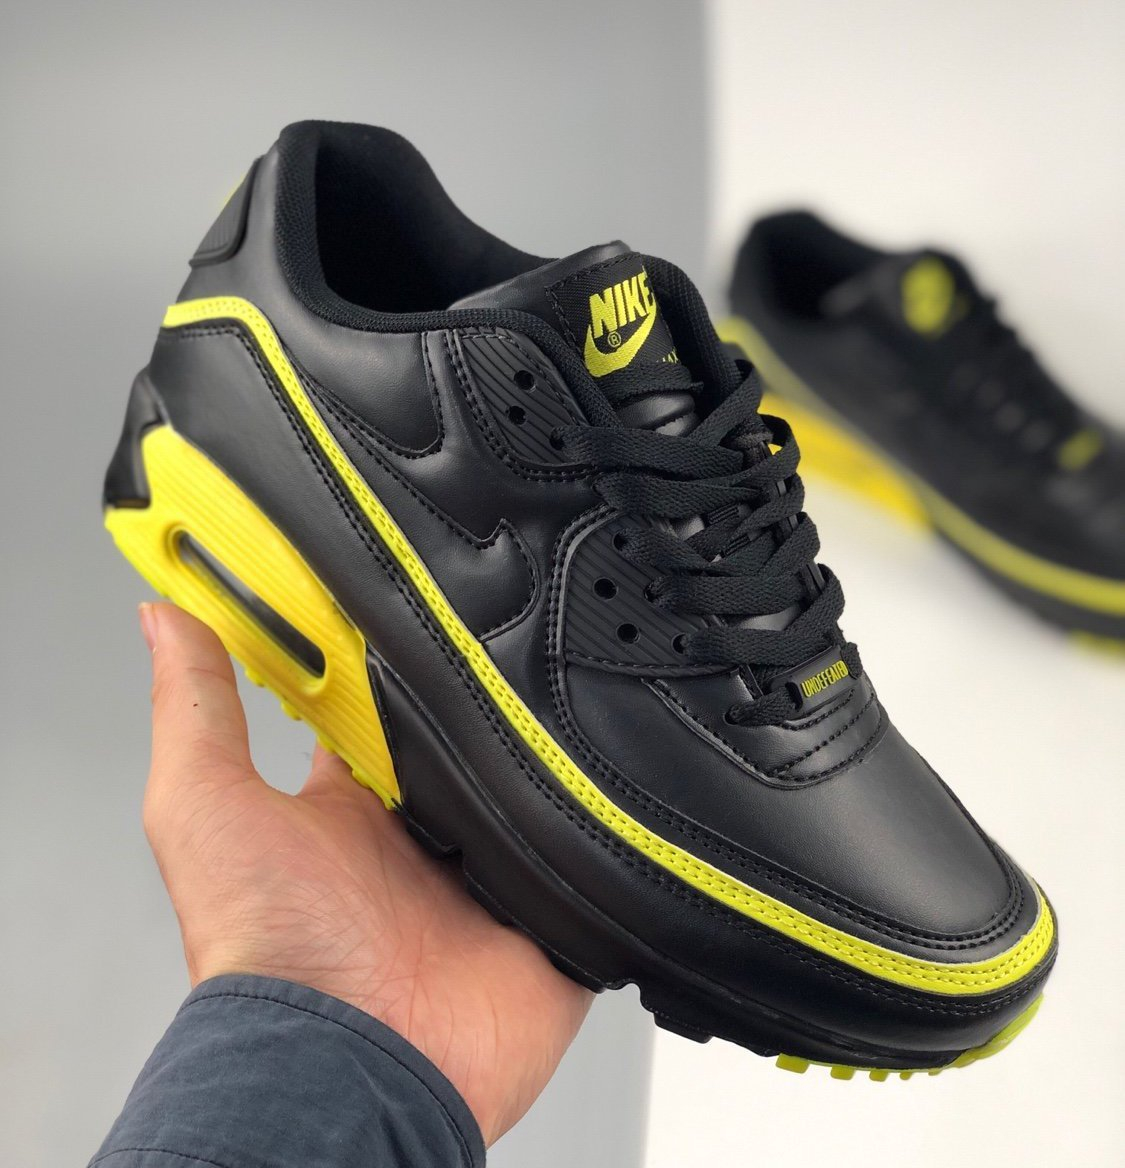 Image of Undefeated x Nike Air Max 90 Five Bars Joint Half Palm Air Cushion Retro Casual Running Shoes